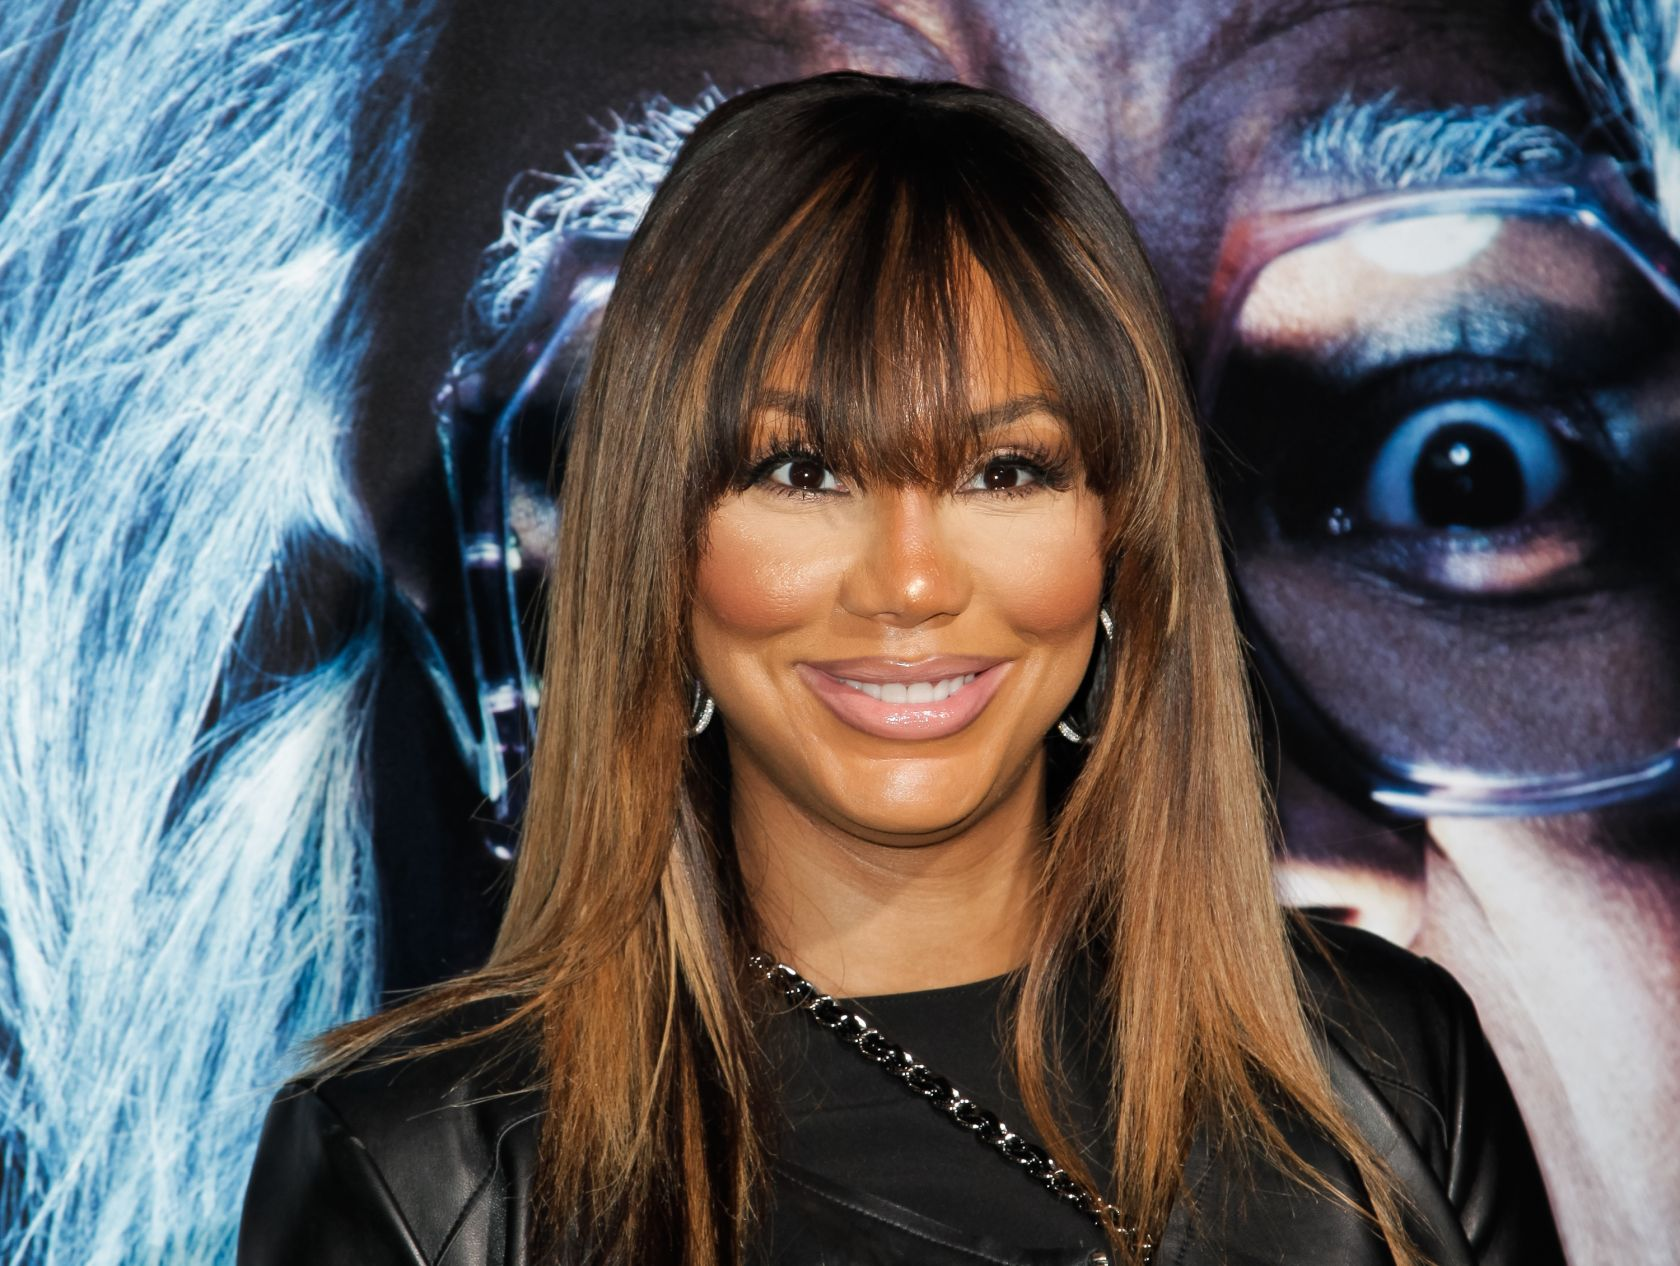 Tamar Braxton Touches A Sensitive Subject About Grief - She Reveals A Heartbreak Story To Her Fans